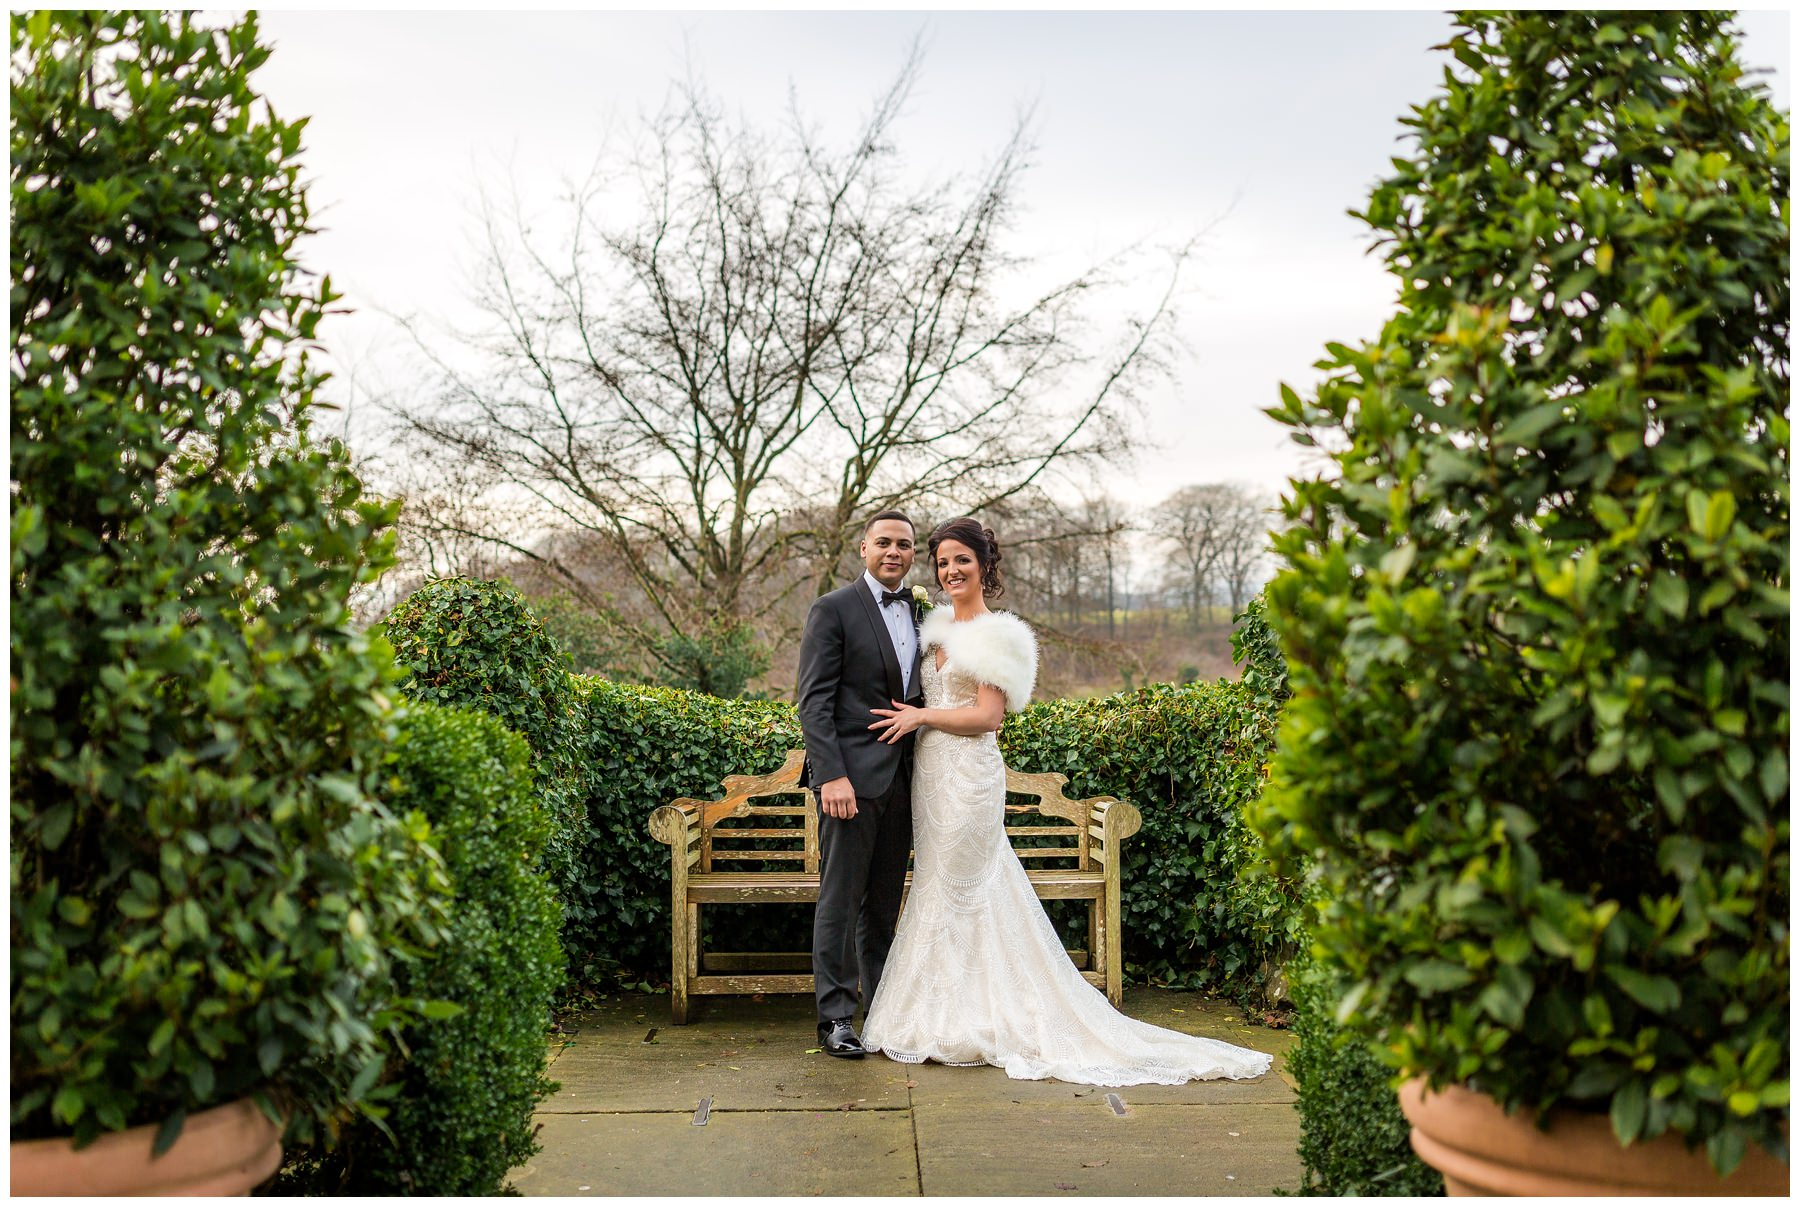 bride and groom portrait between trees in gardens of mitton hall, north west wedding photographer